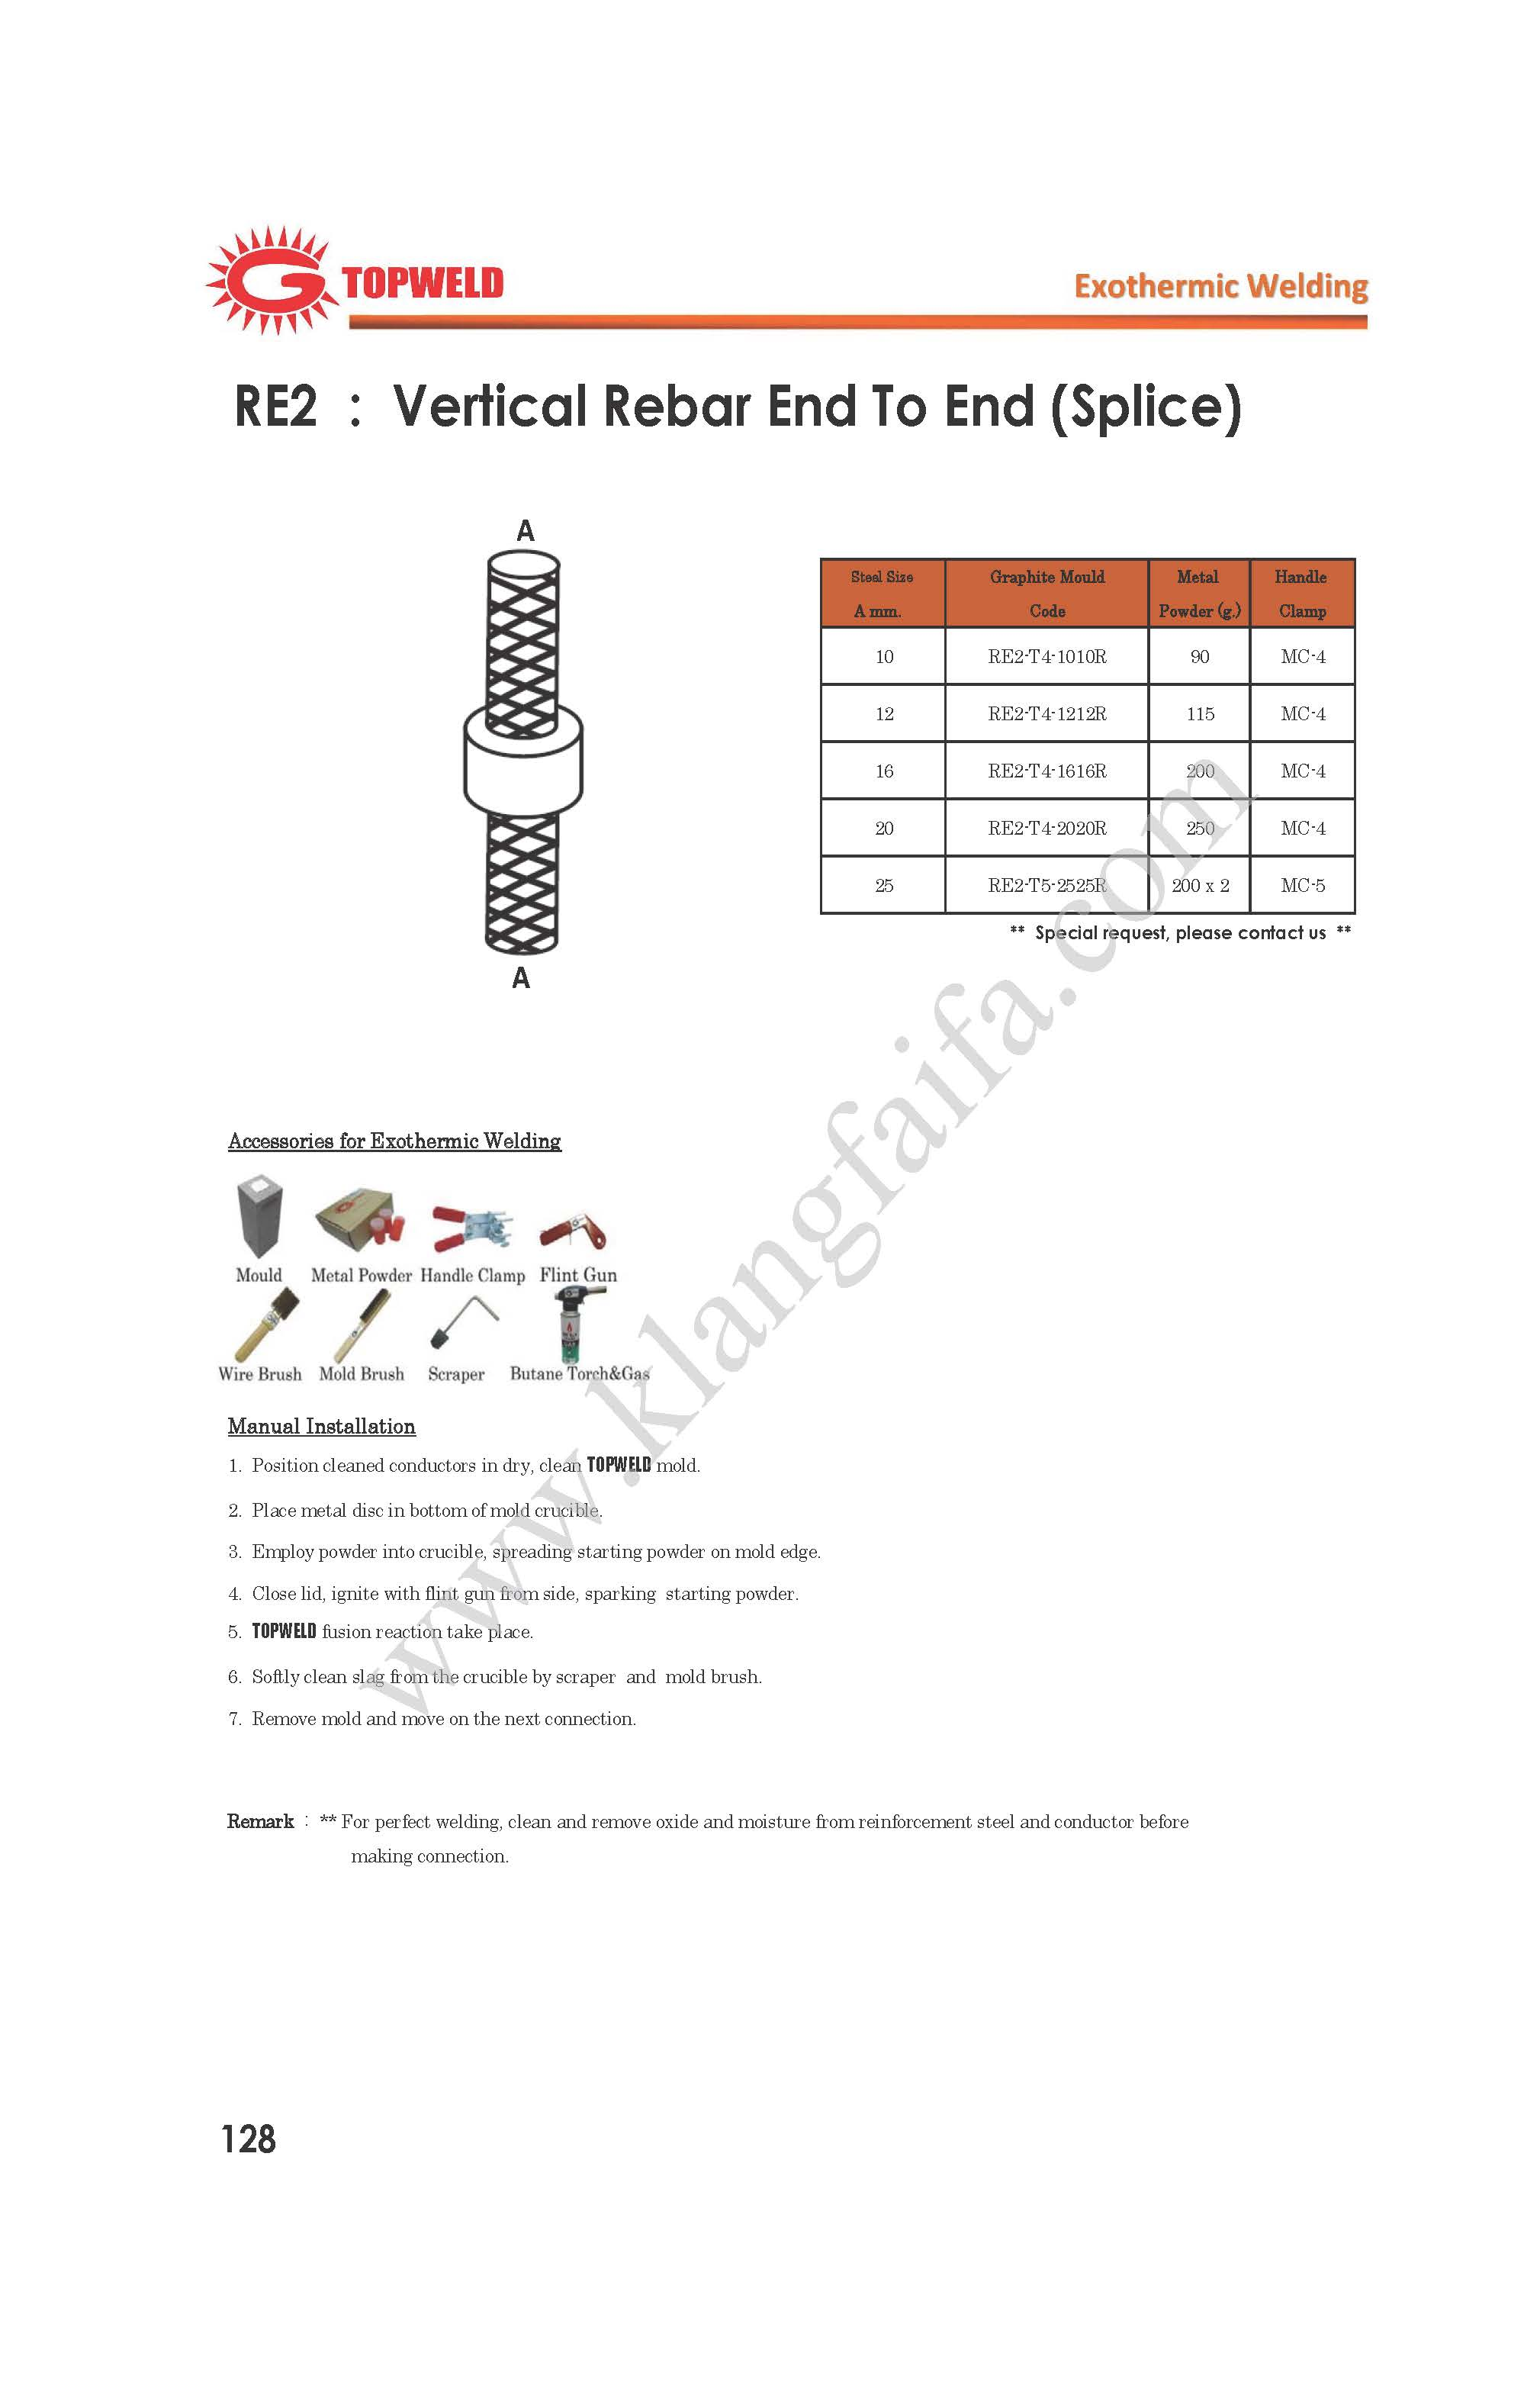 Topweld, grounding Lightning arrester,Exotheremic welding, Topweld pricelist